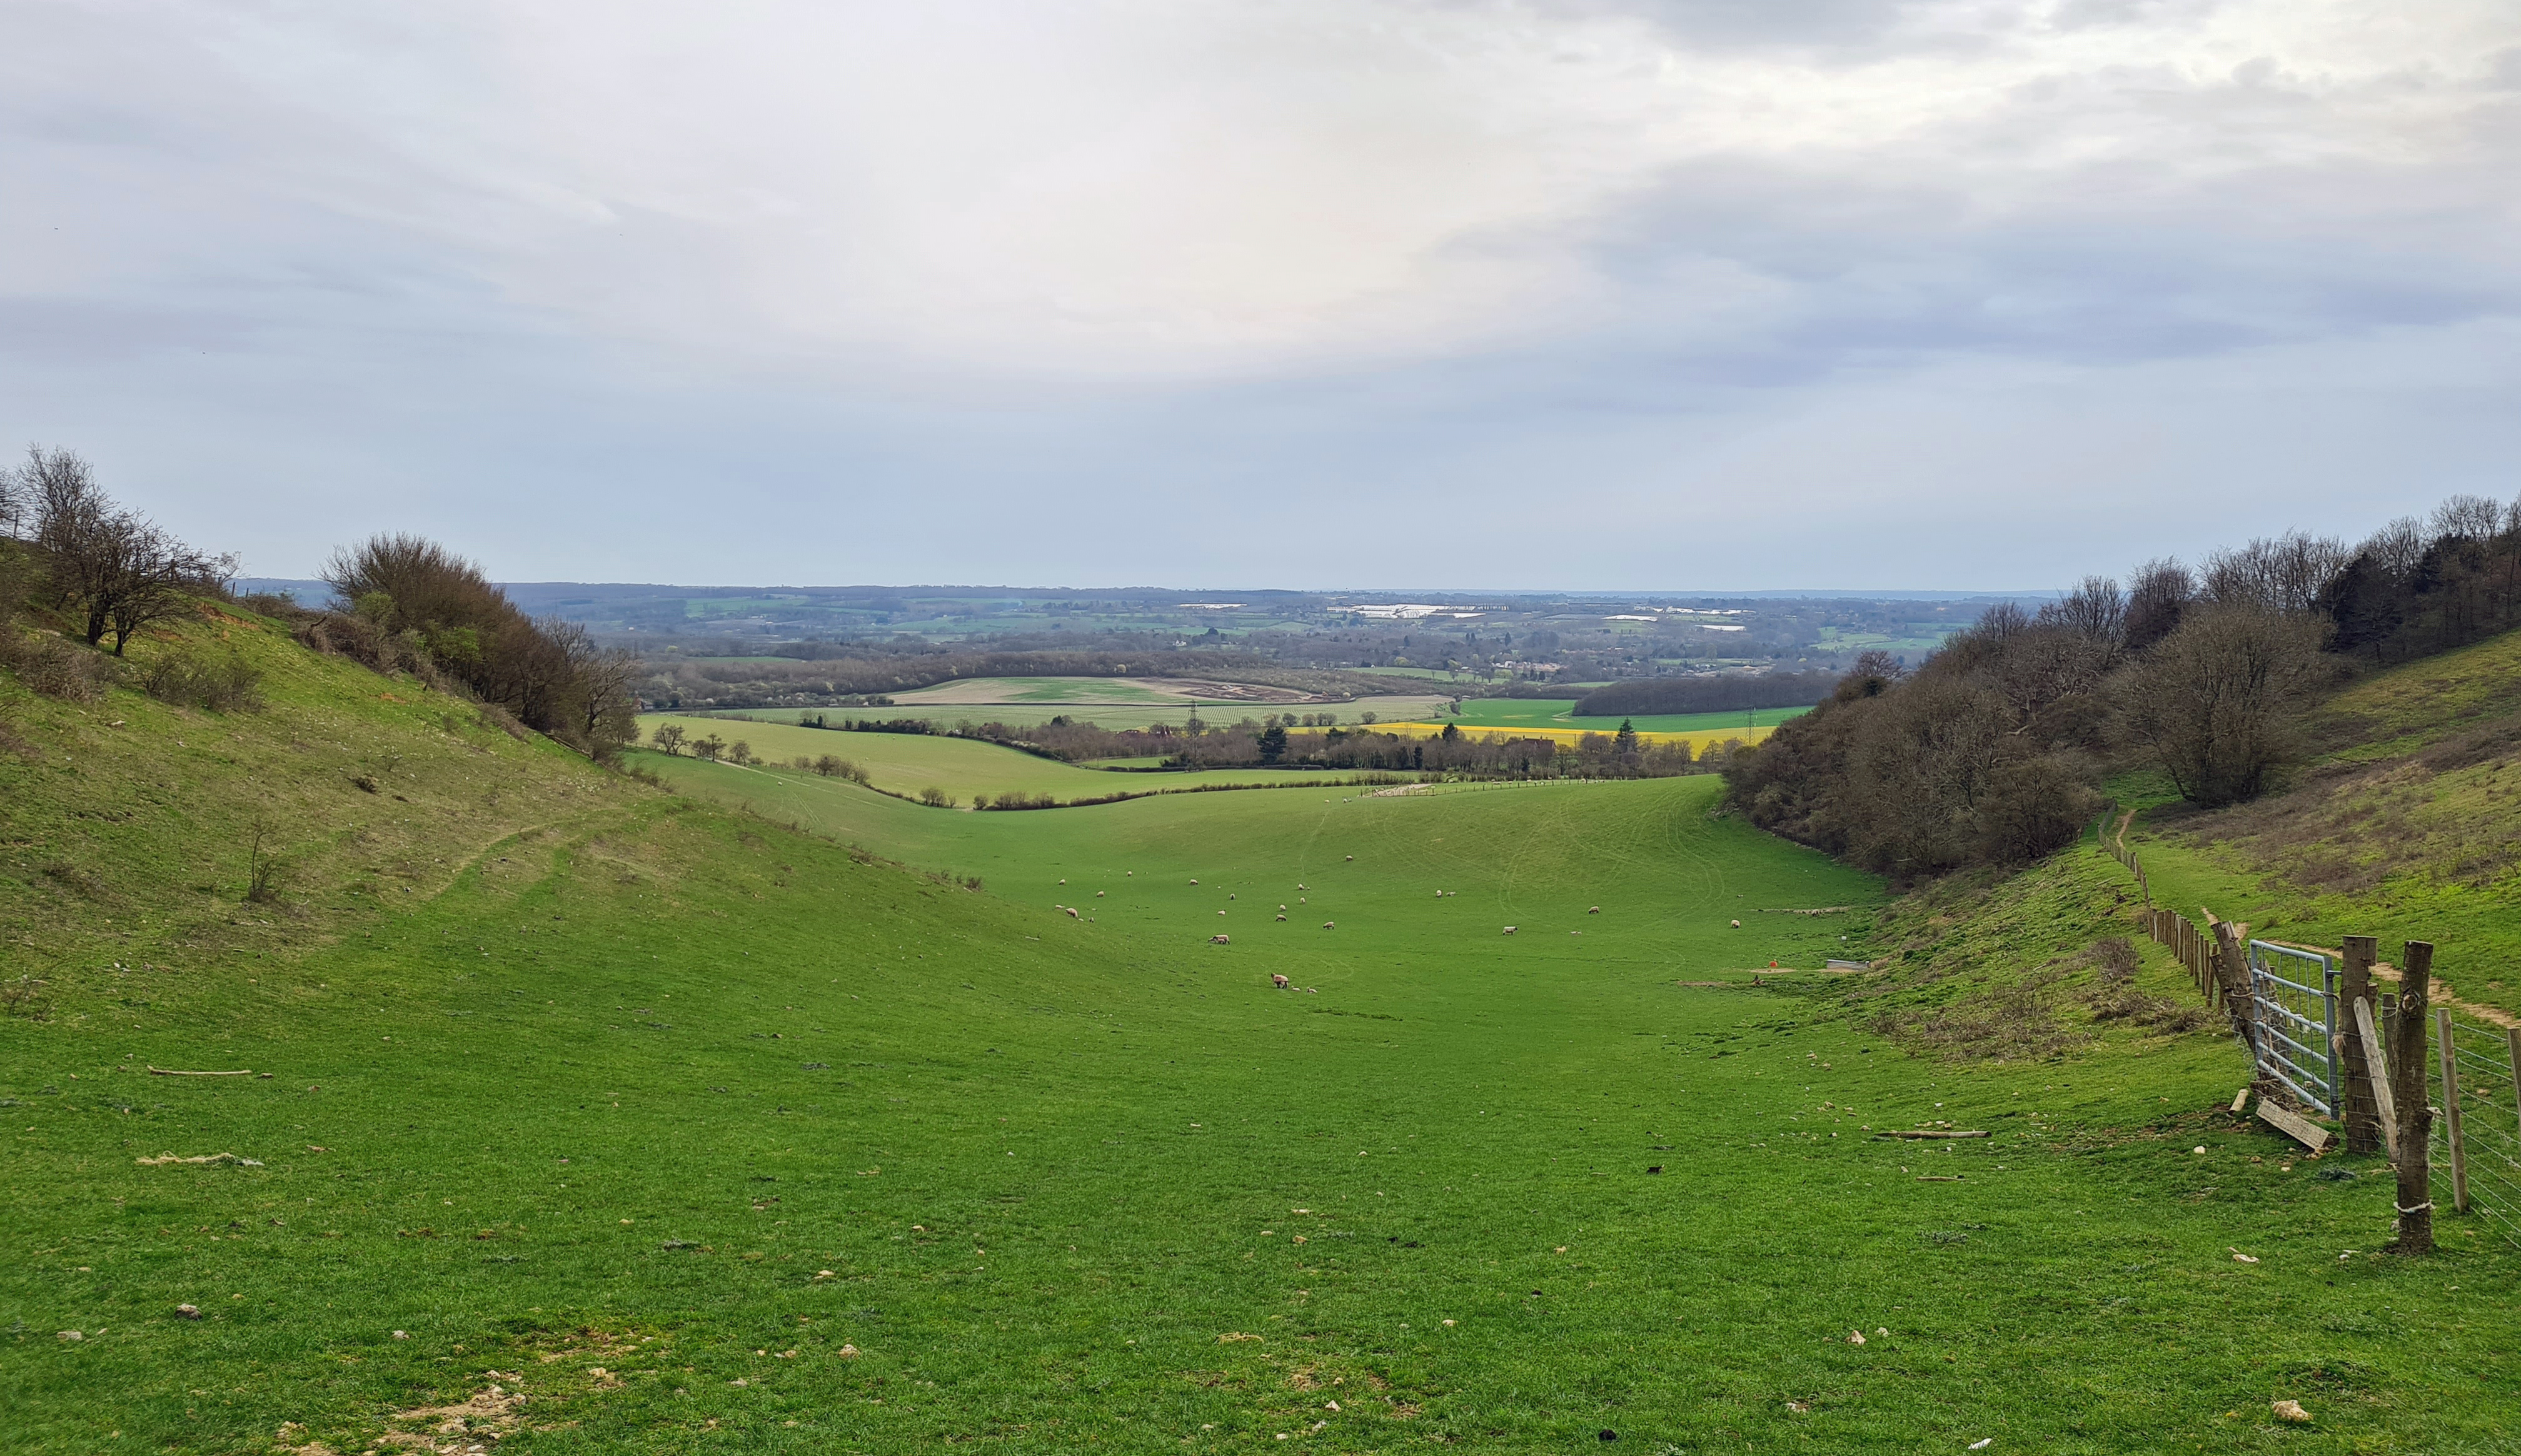 North Downs Way rollercoasters the dry valleys